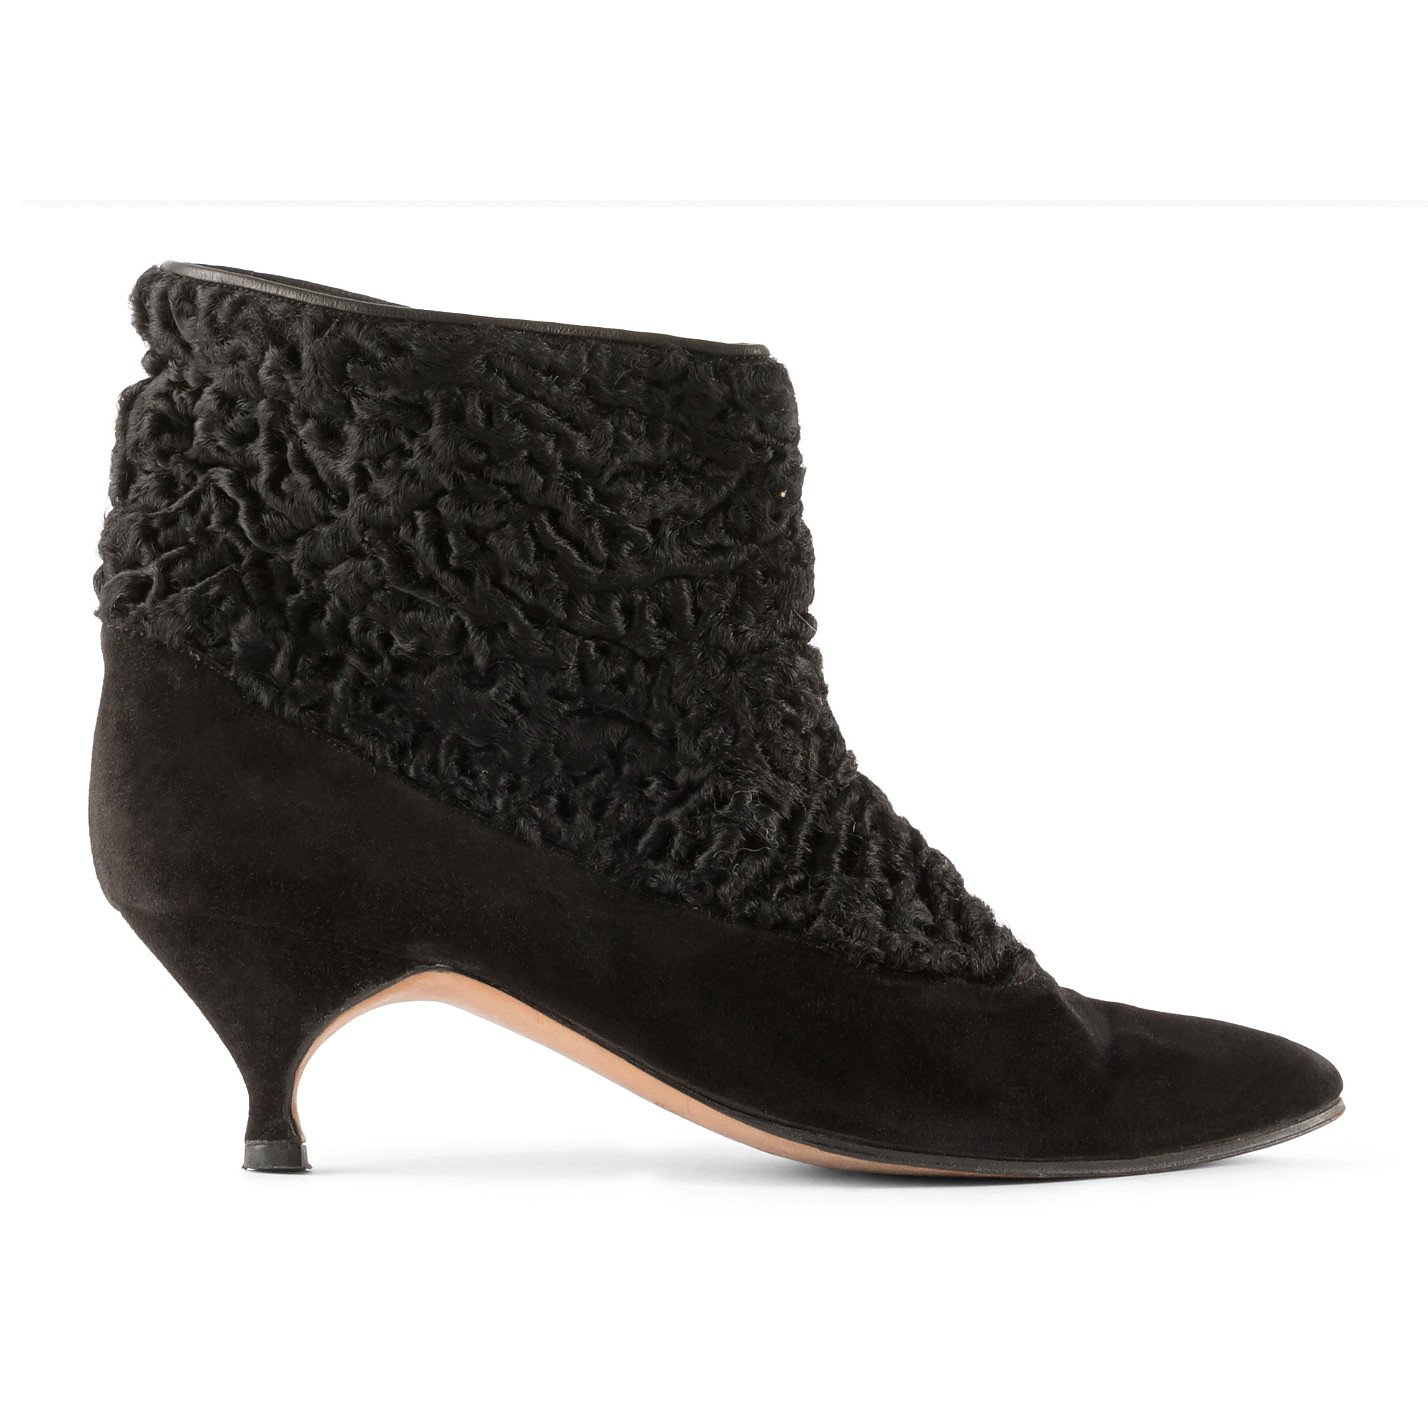 Manolo Blahnik Textured Suede Ankle Boots